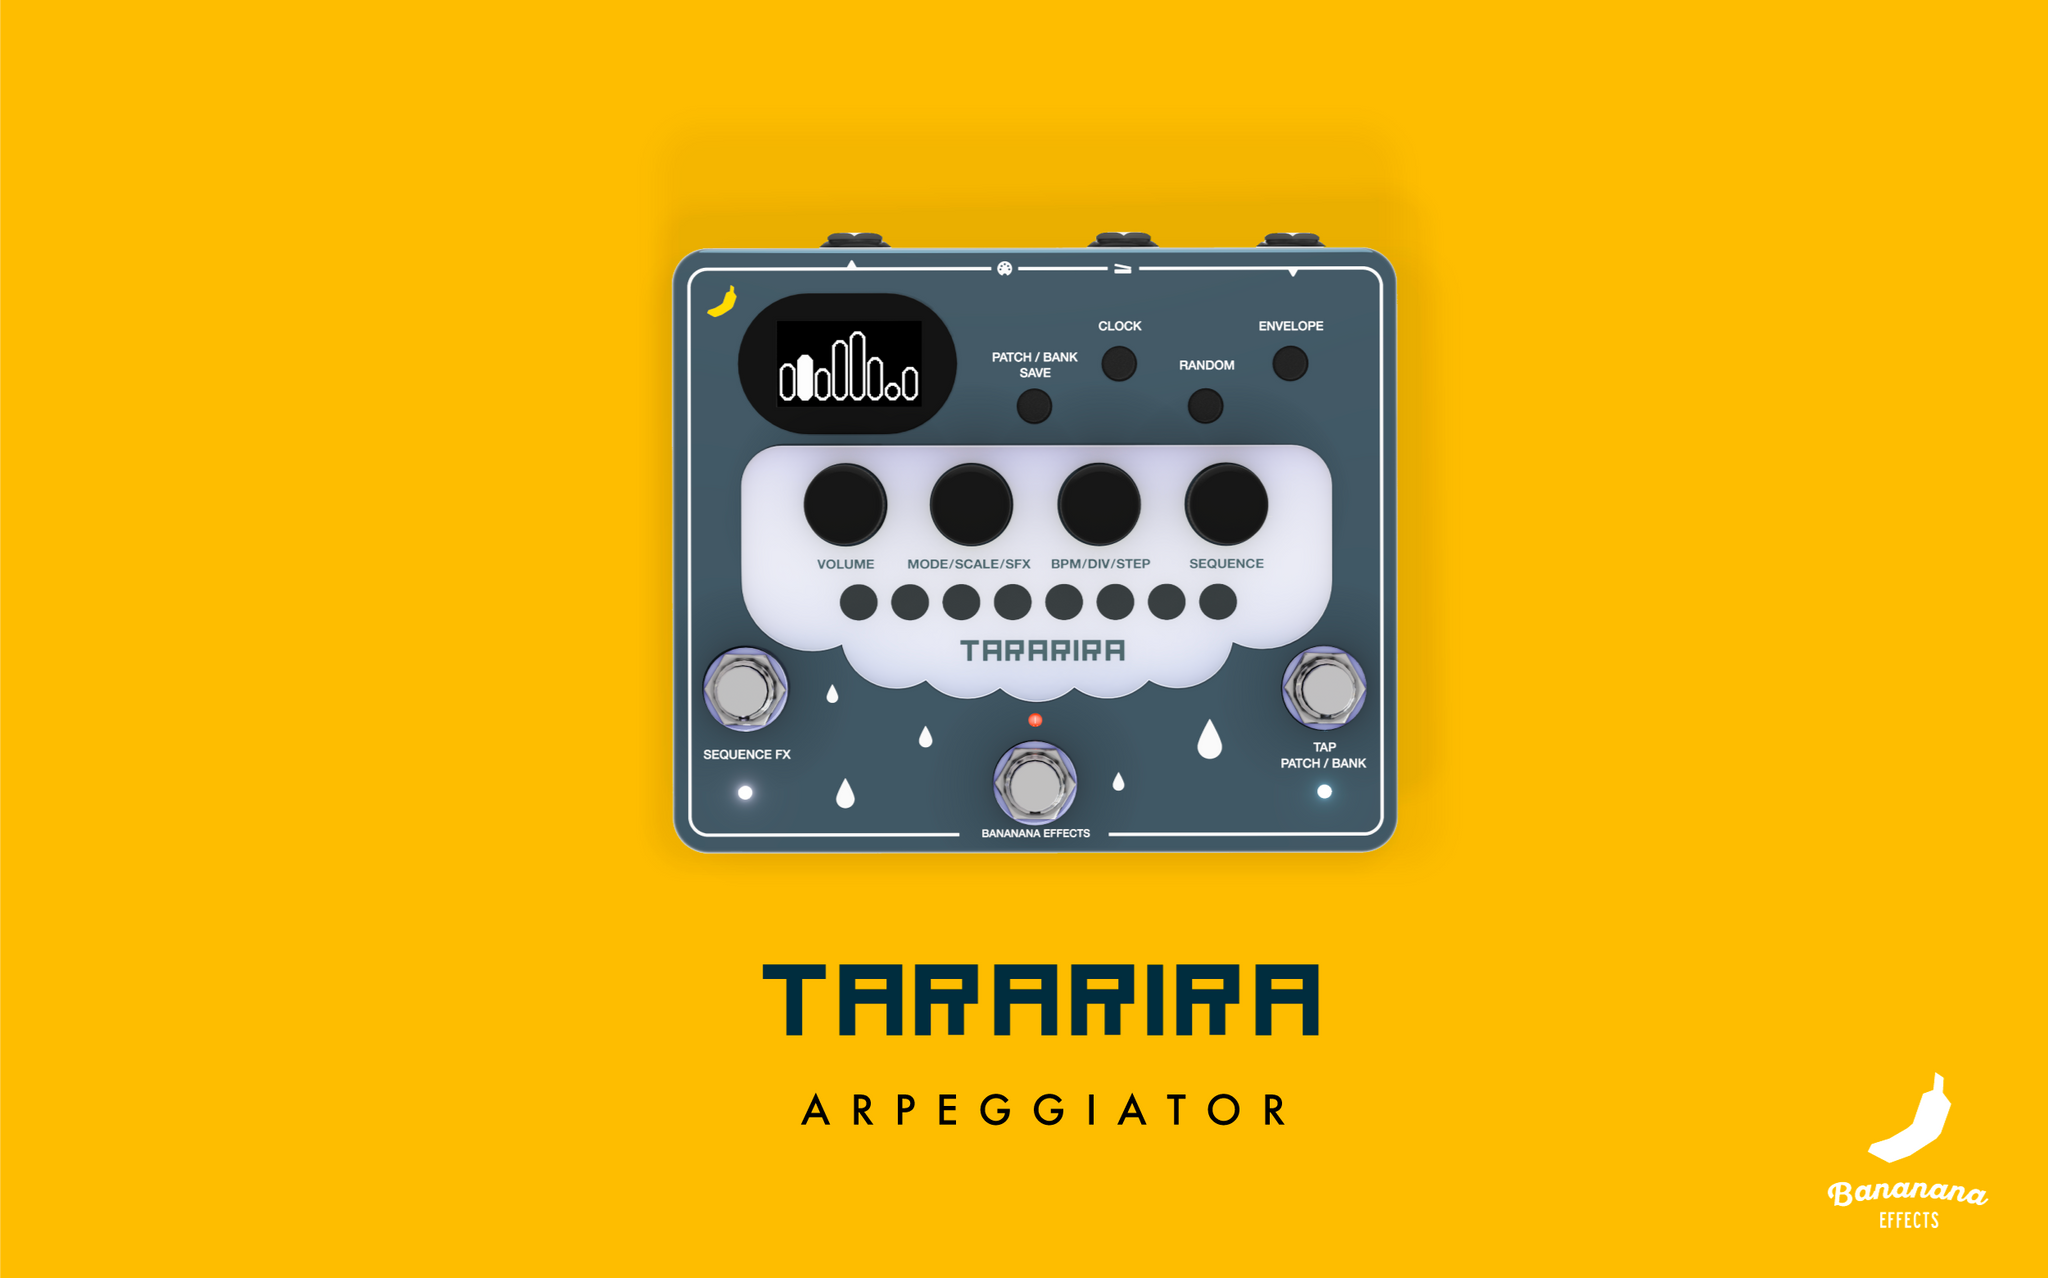 Tararira arpeggiator pedal finally will be released in February!